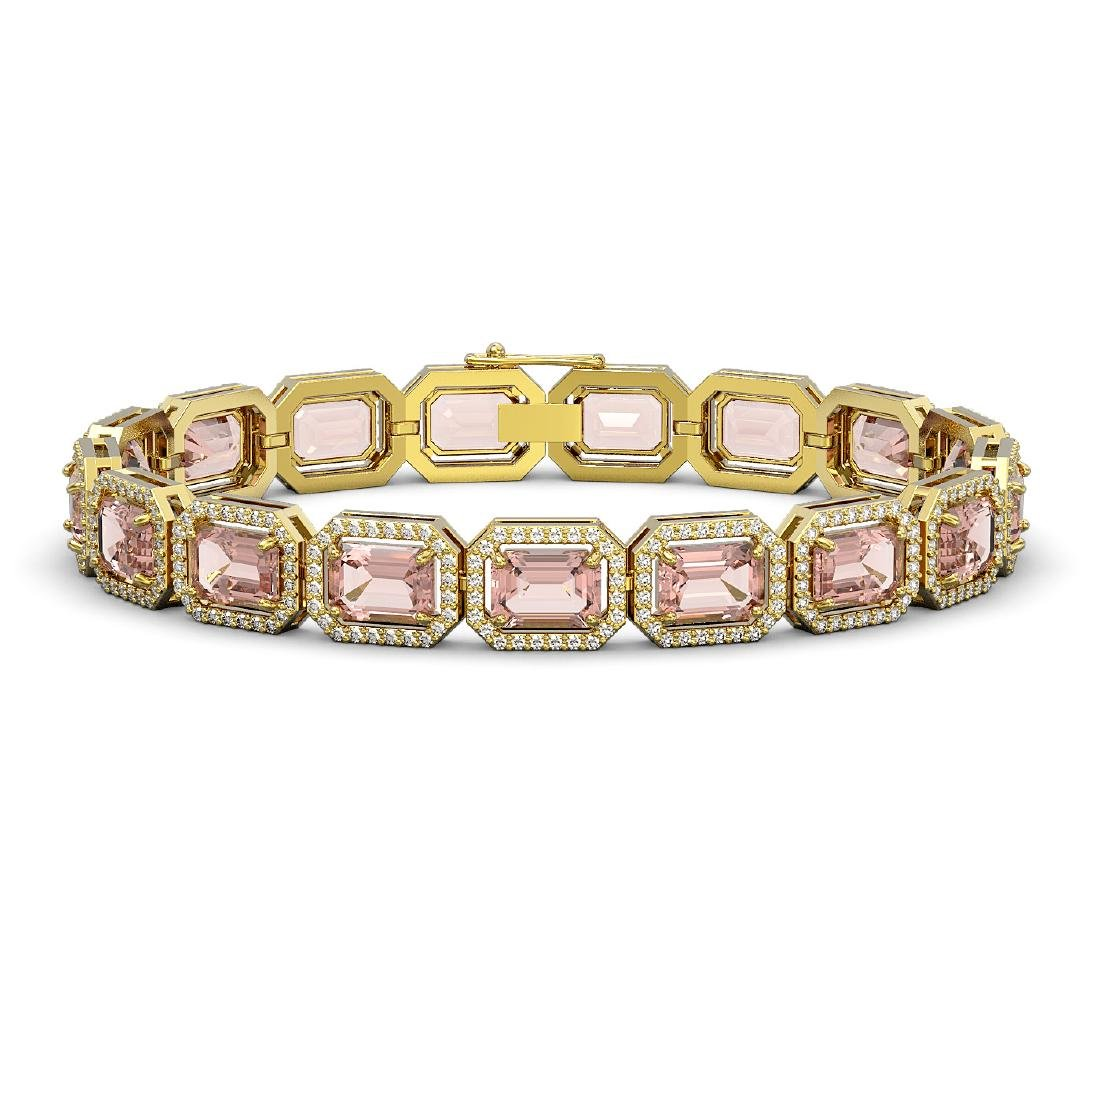 22.81 CTW Morganite & Diamond Halo Bracelet 10K Yellow